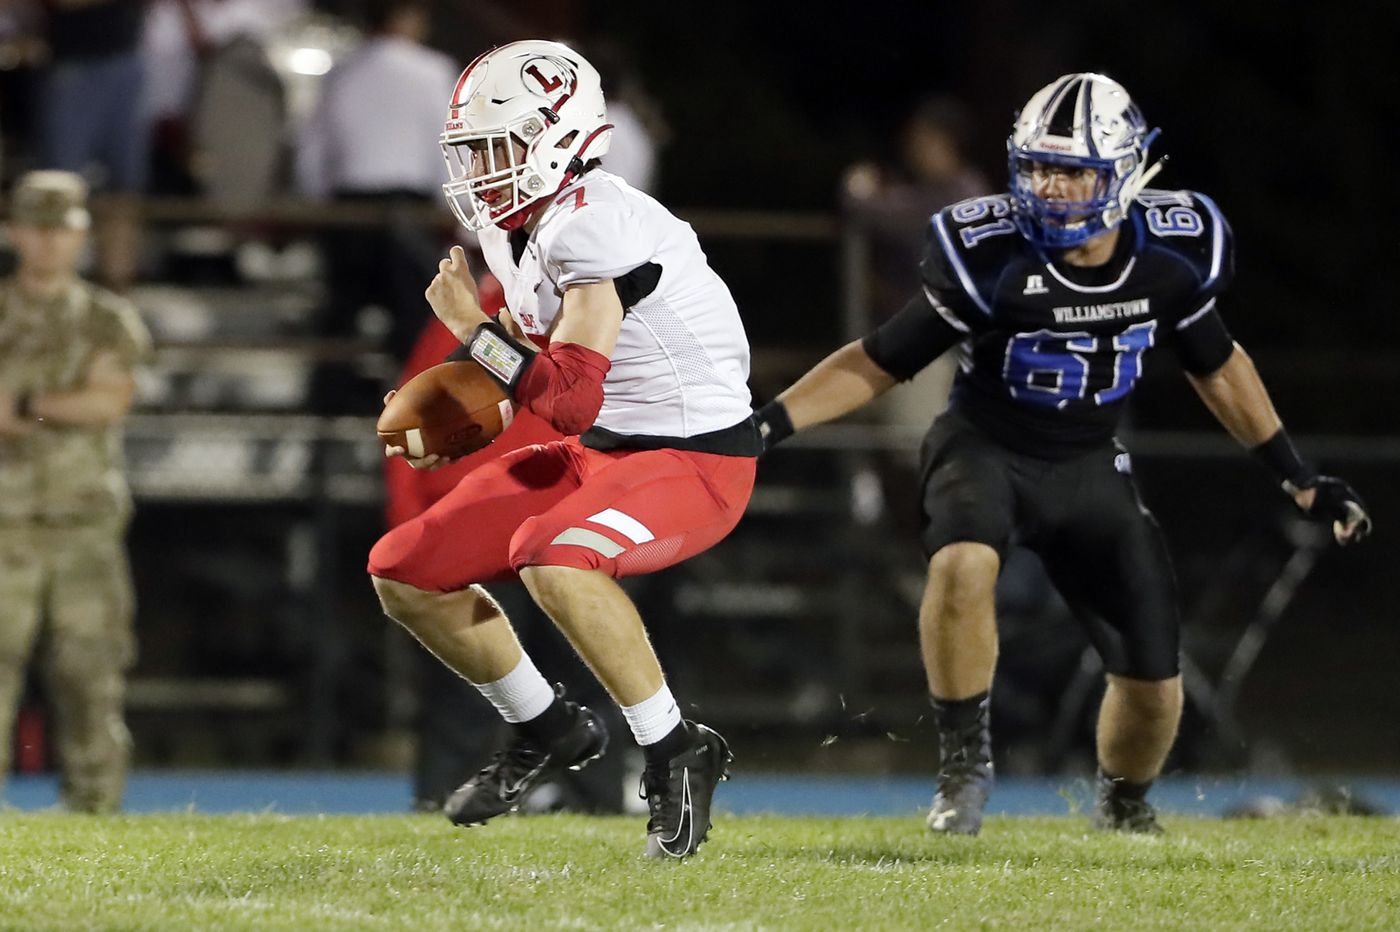 Friday's South Jersey roundup: Hamza Bruce leads Lenape to blowout win